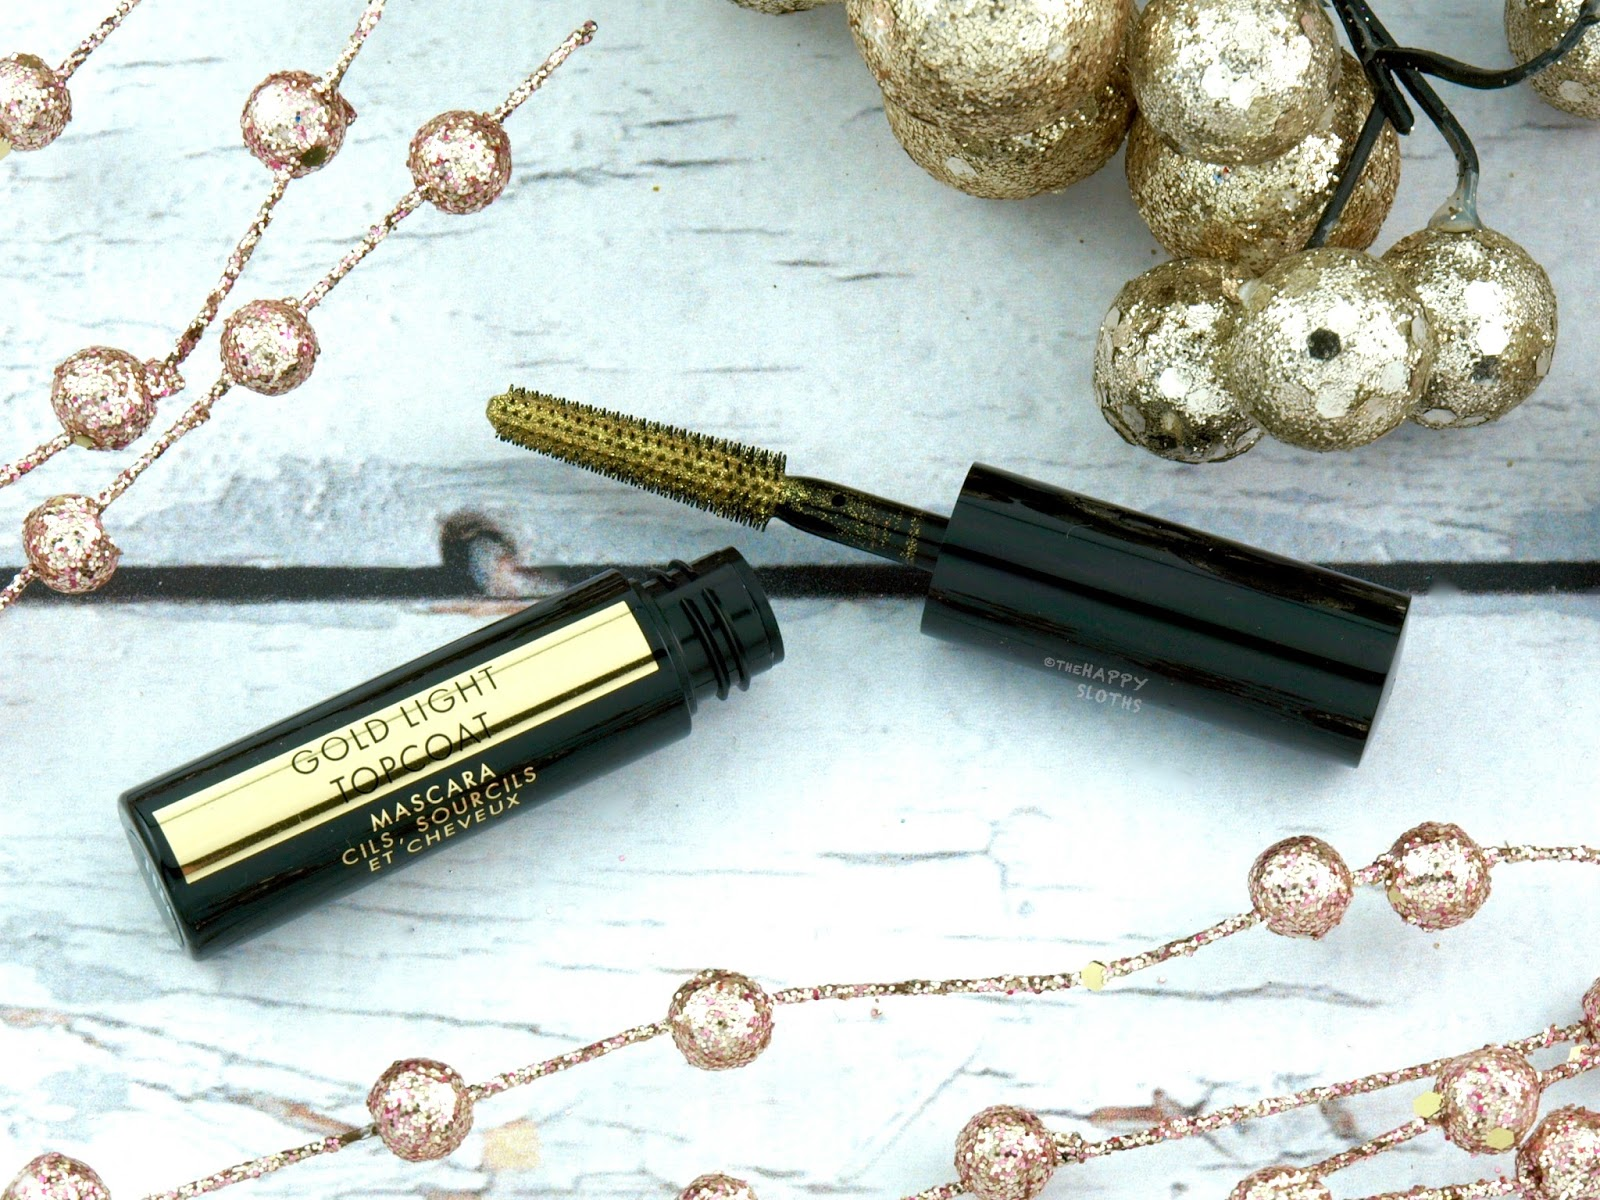 Guerlain Holiday 2017 Collection | Gold Light Topcoat Mascara: Review and Swatches